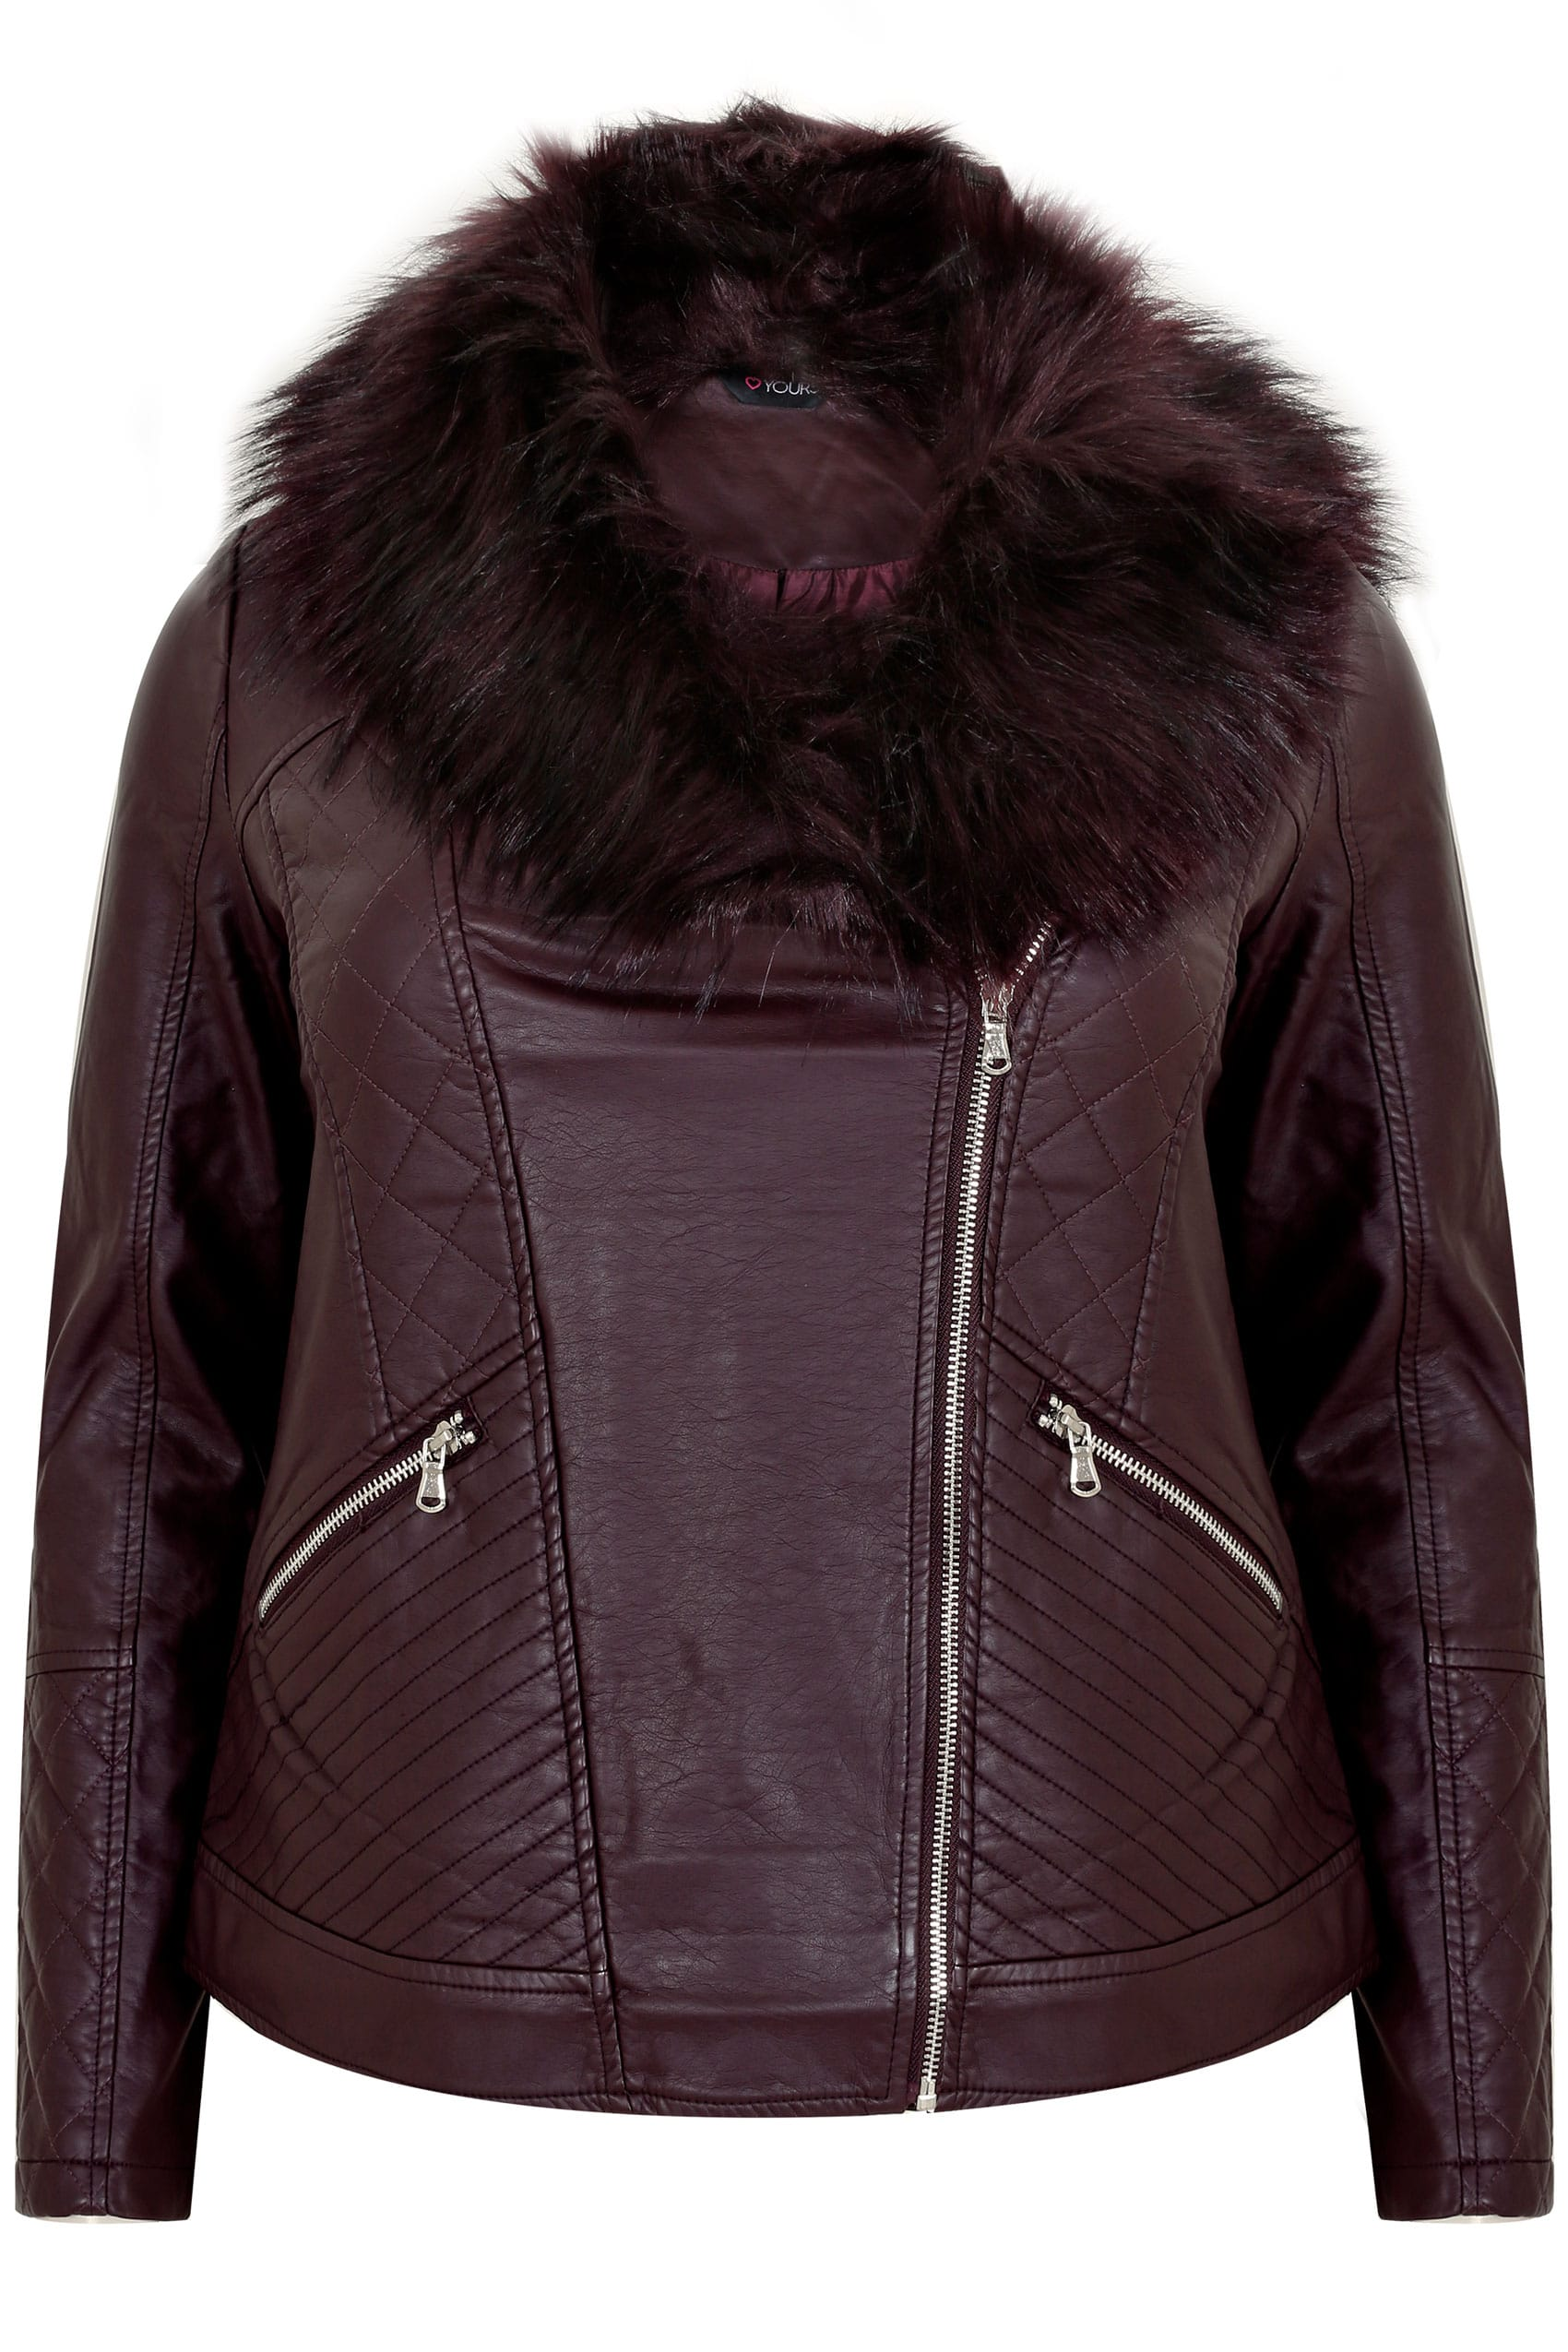 big collection women full range of specifications Burgundy PU Leather Look Biker Jacket With Faux Fur Collar